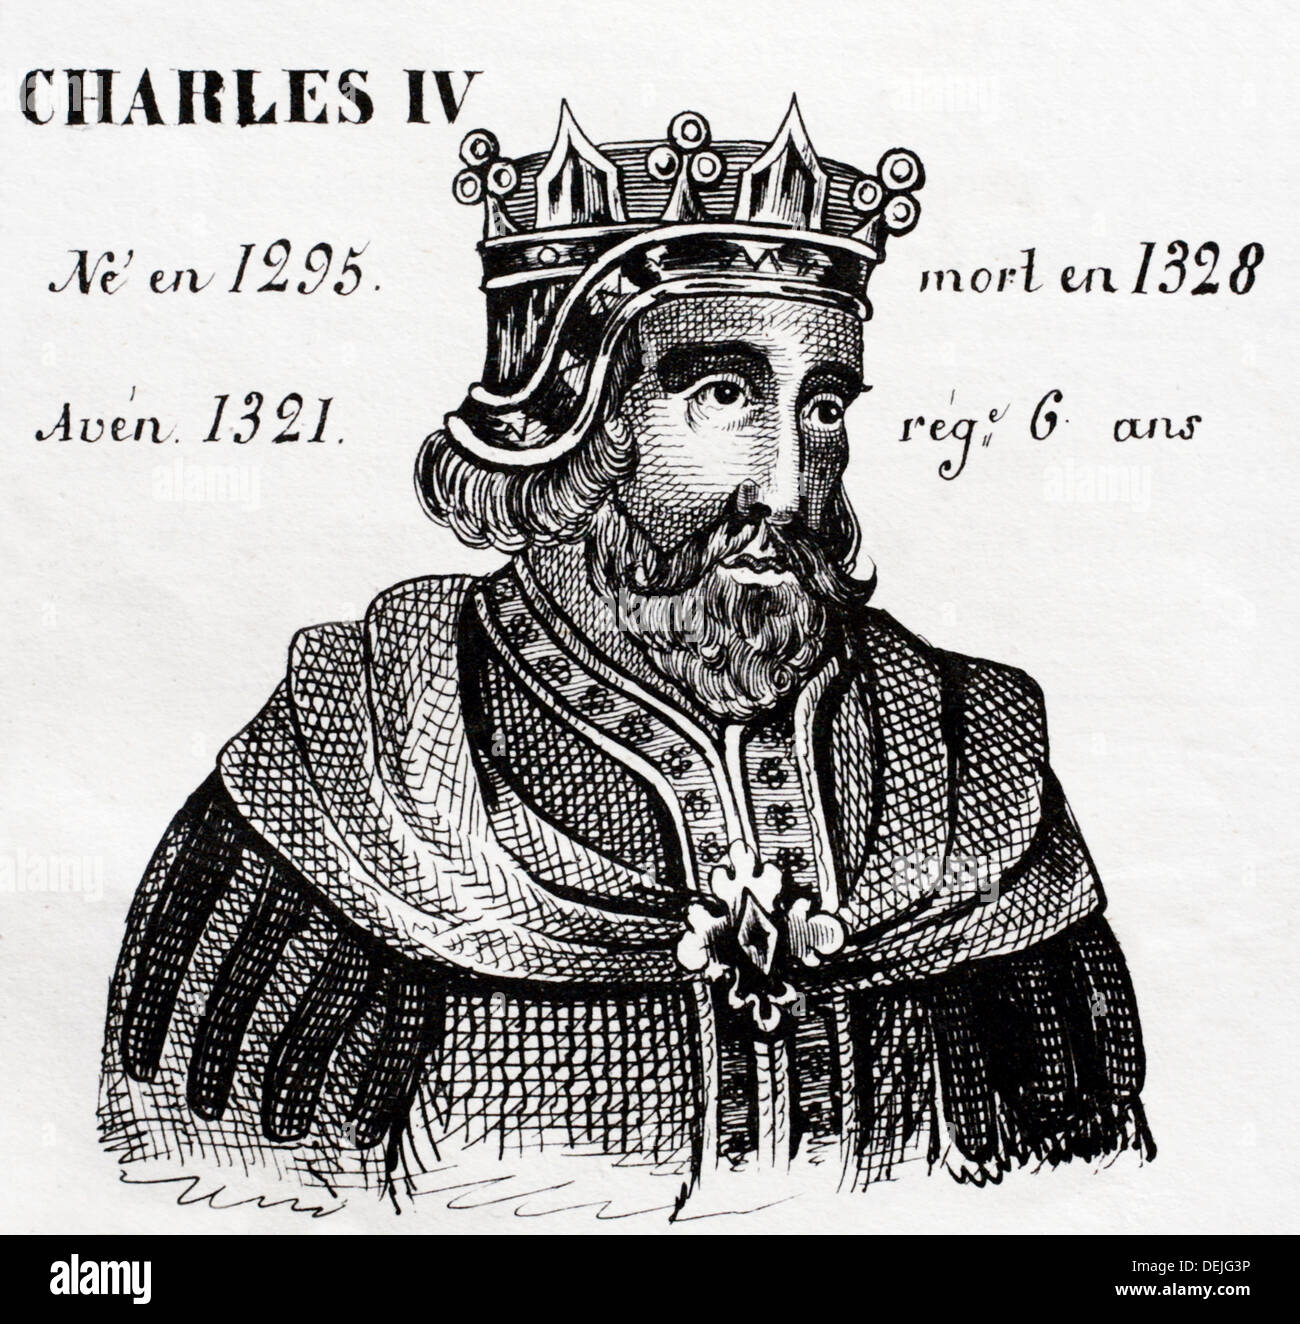 Charles IV, king of France from 1321 to 1328. History of France, by  J.Henry (Paris, 1842) Stock Photo